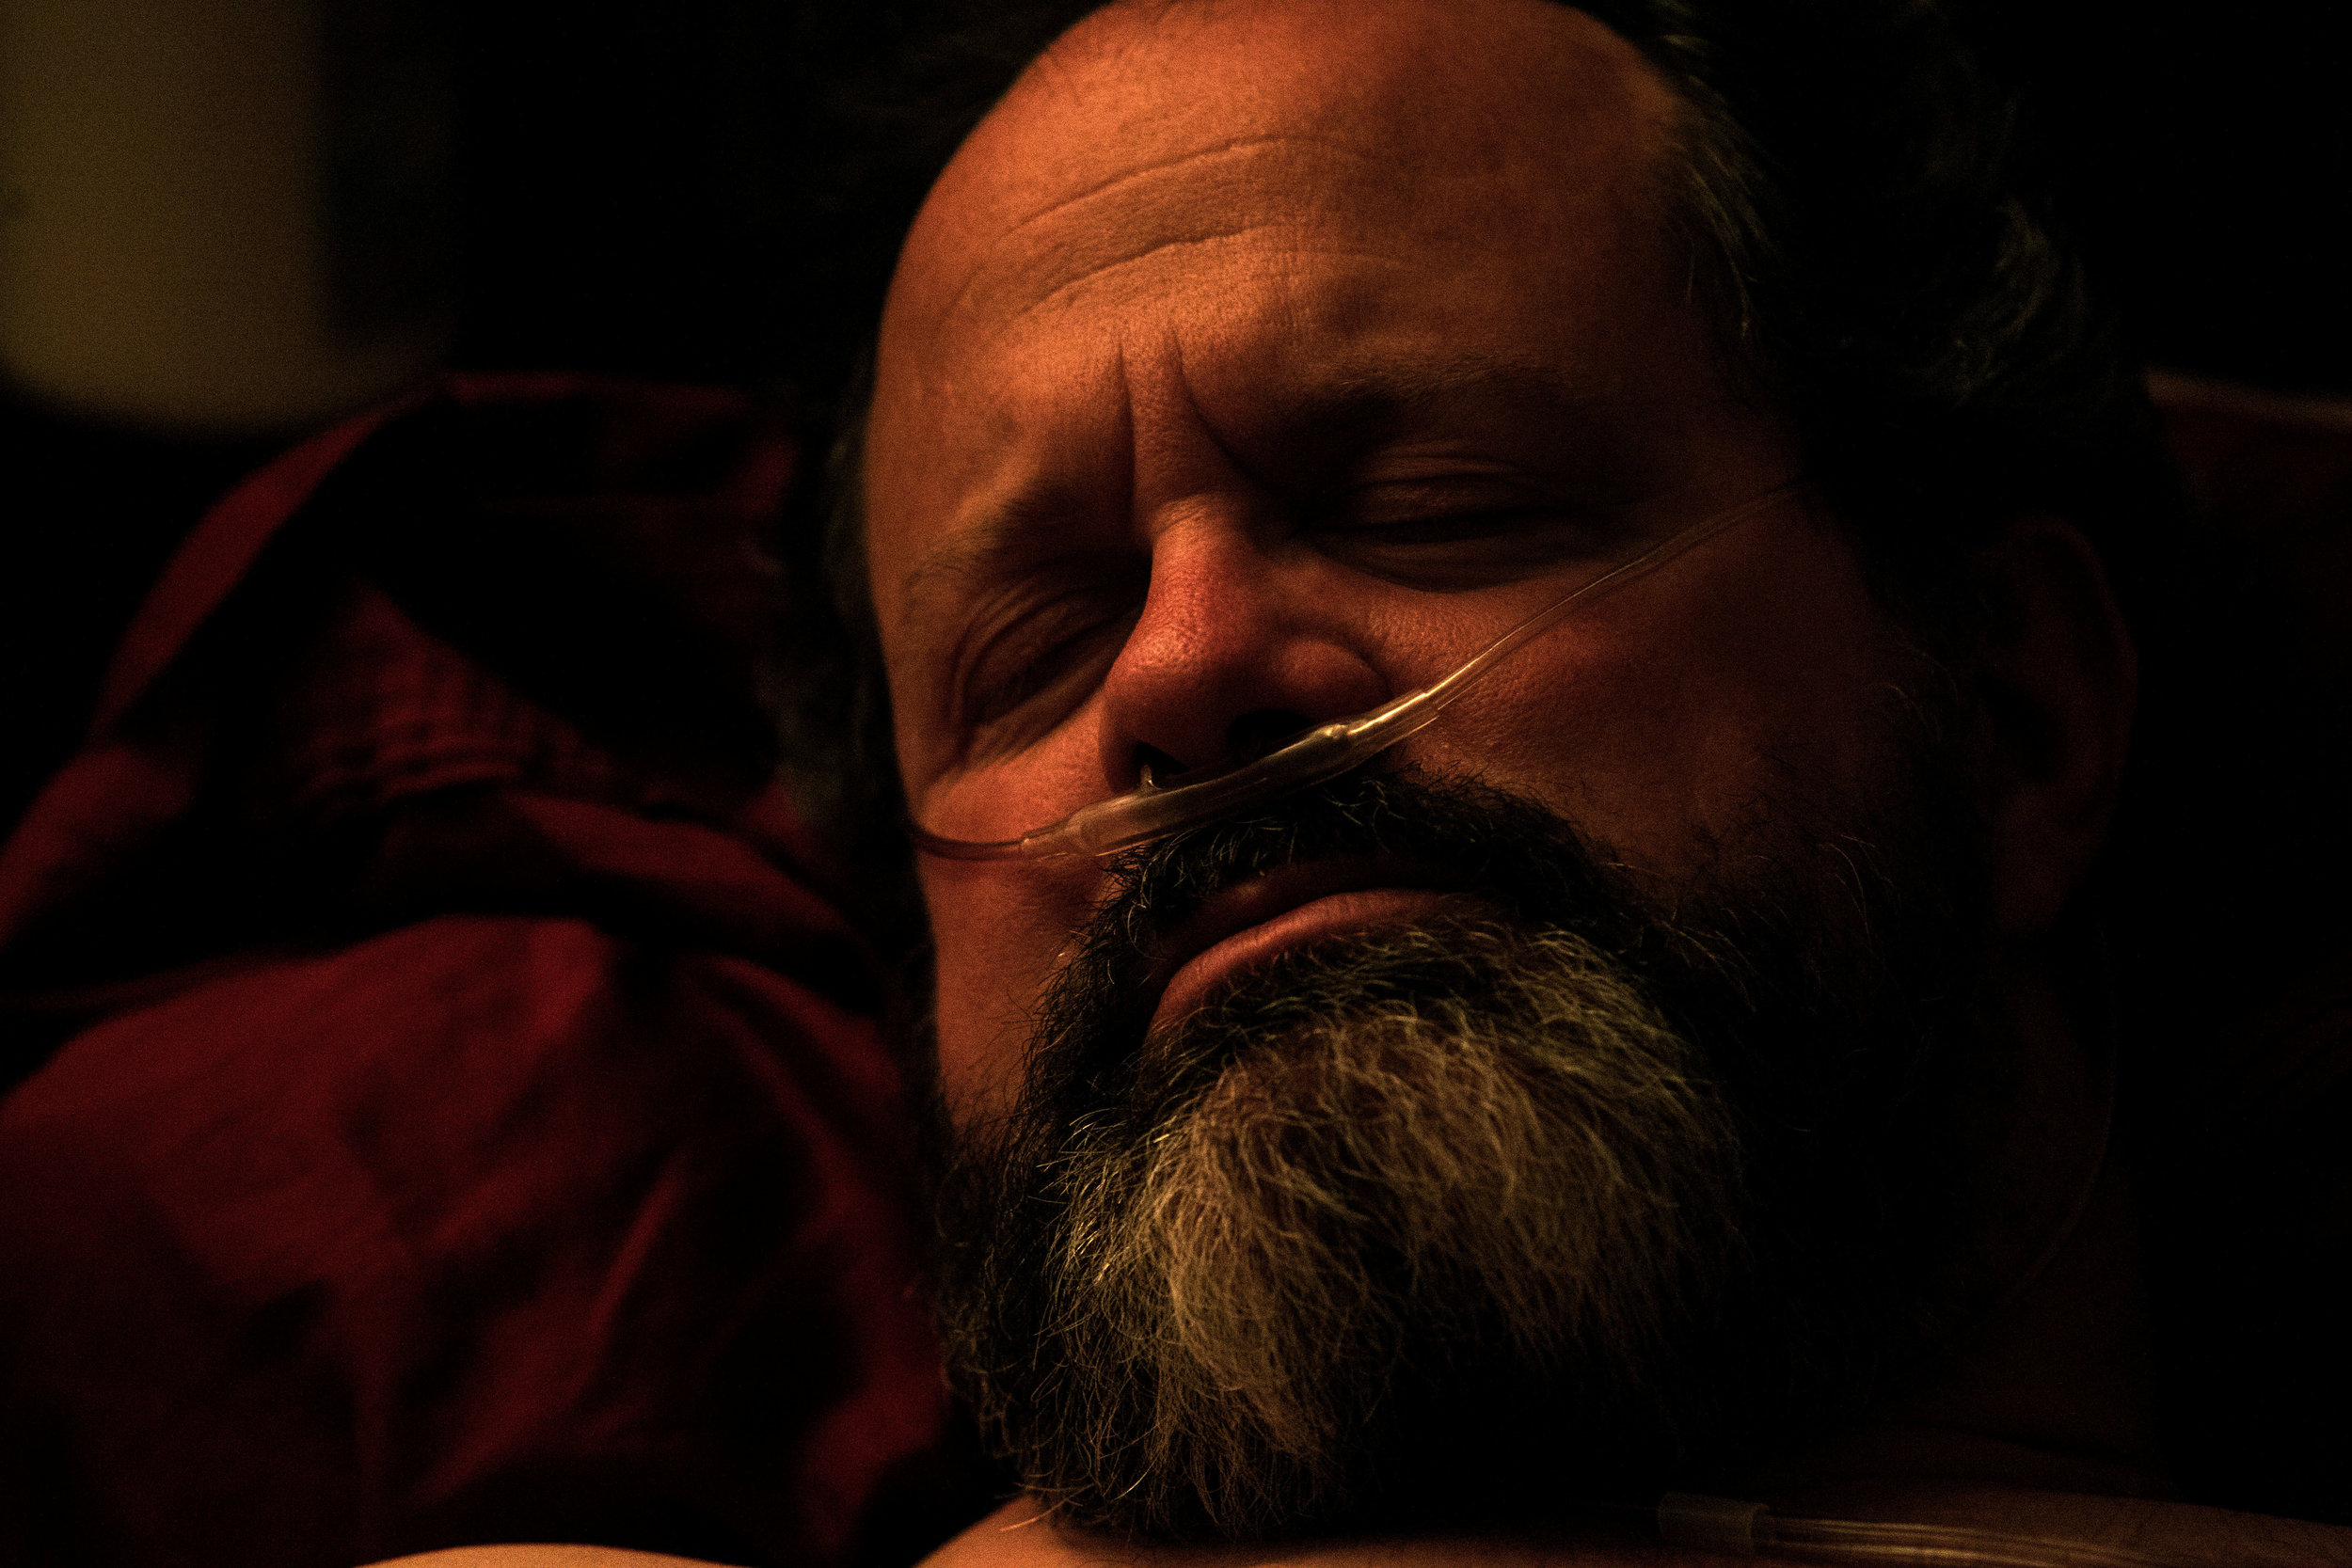 Kevin Pettit, 50, rests his eyes as he lays in his bed in Boulder, Colorado, on April 10, 2018. Pettit sleeps with a breathing machine every night because after the car accident his airways were disrupted and he got sleep apnea.